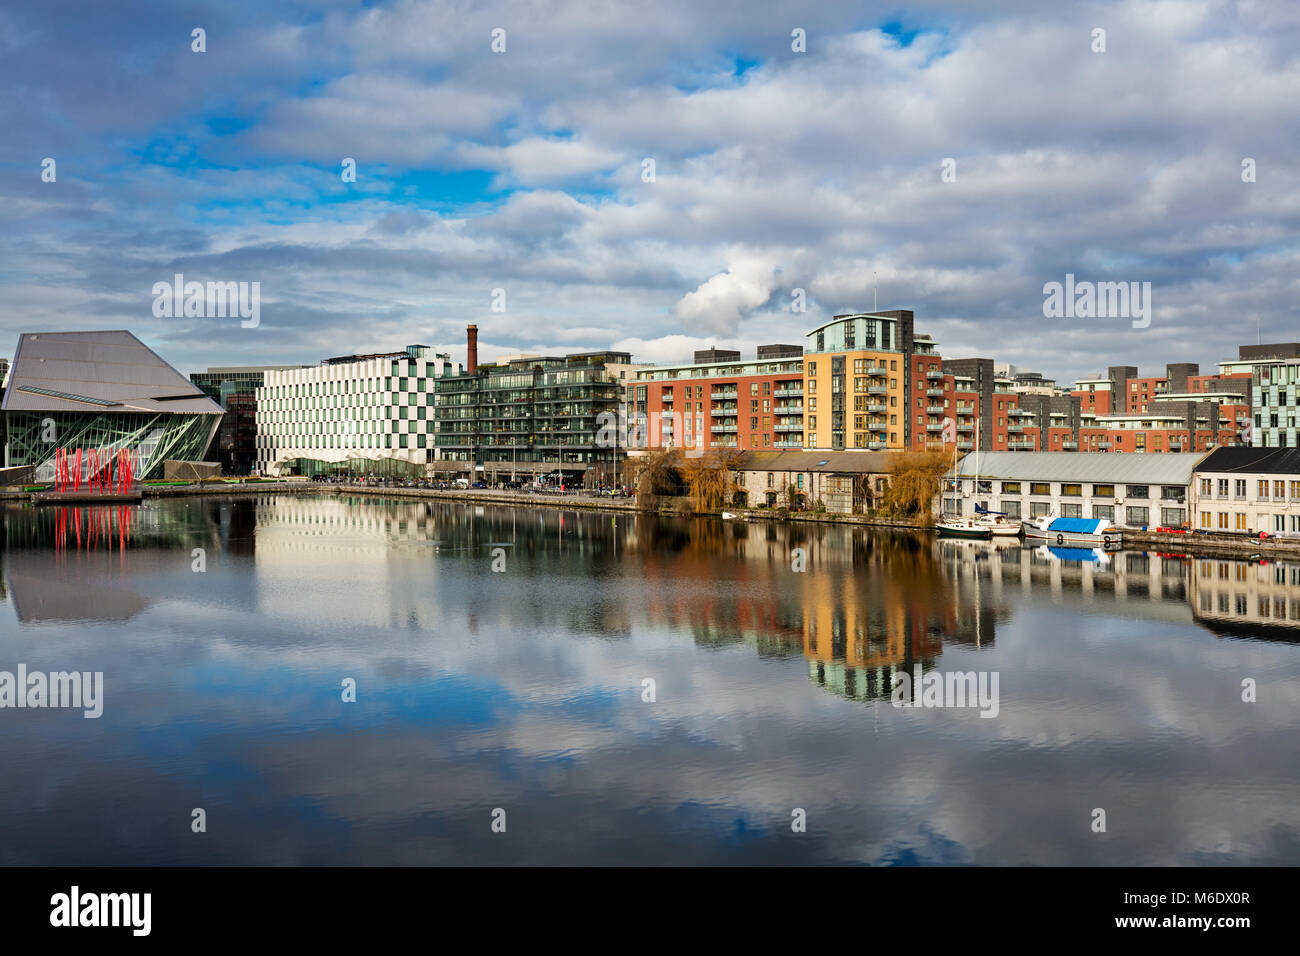 Modern architecture of the Hanover Quay in Grand Canal Dock, Dublin, Ireland - Stock Image